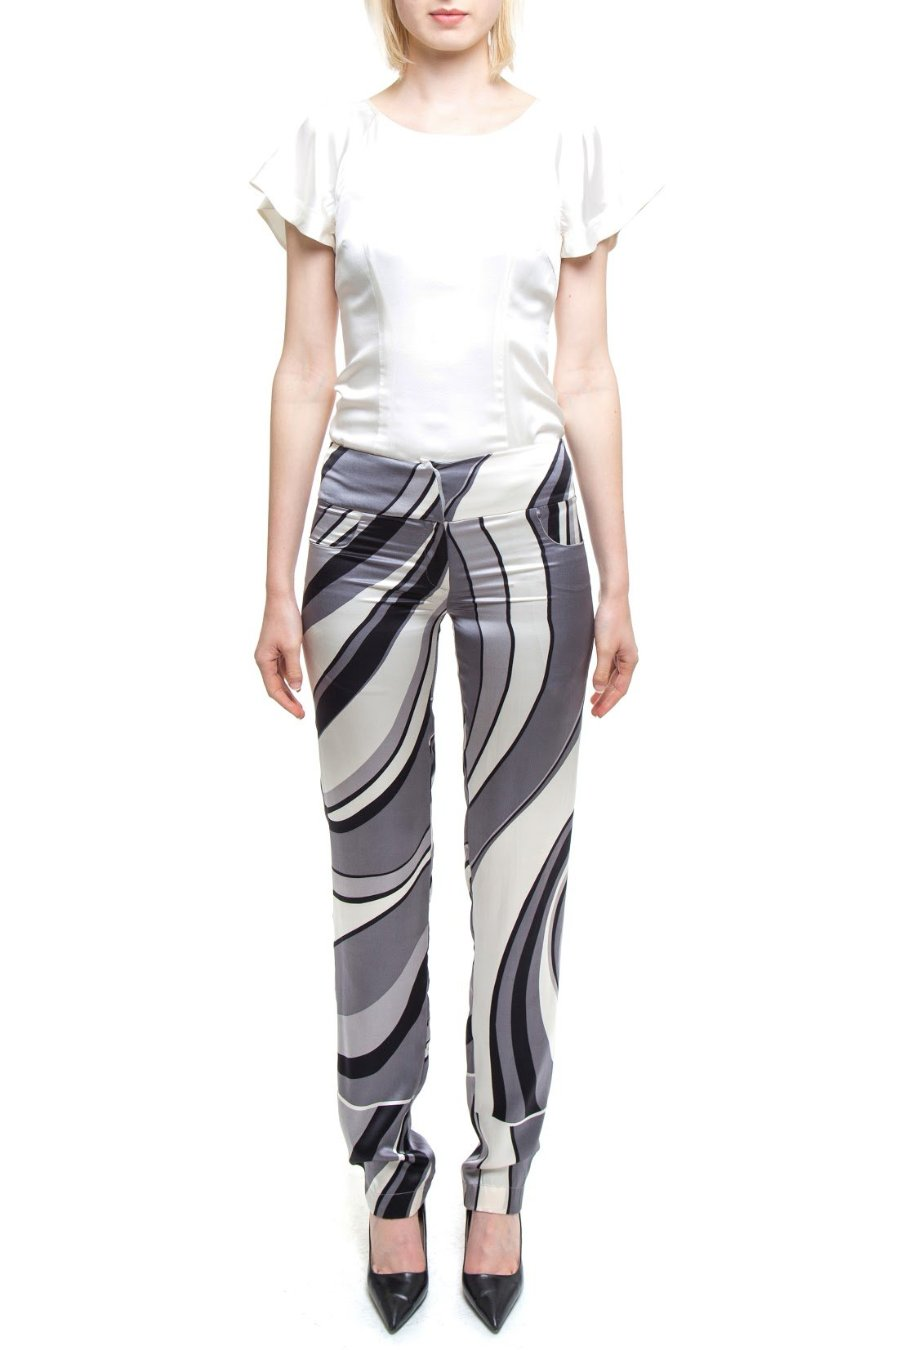 778ad59e11fc3f Groovy Pants in Black White And Grey – Isabella Wren